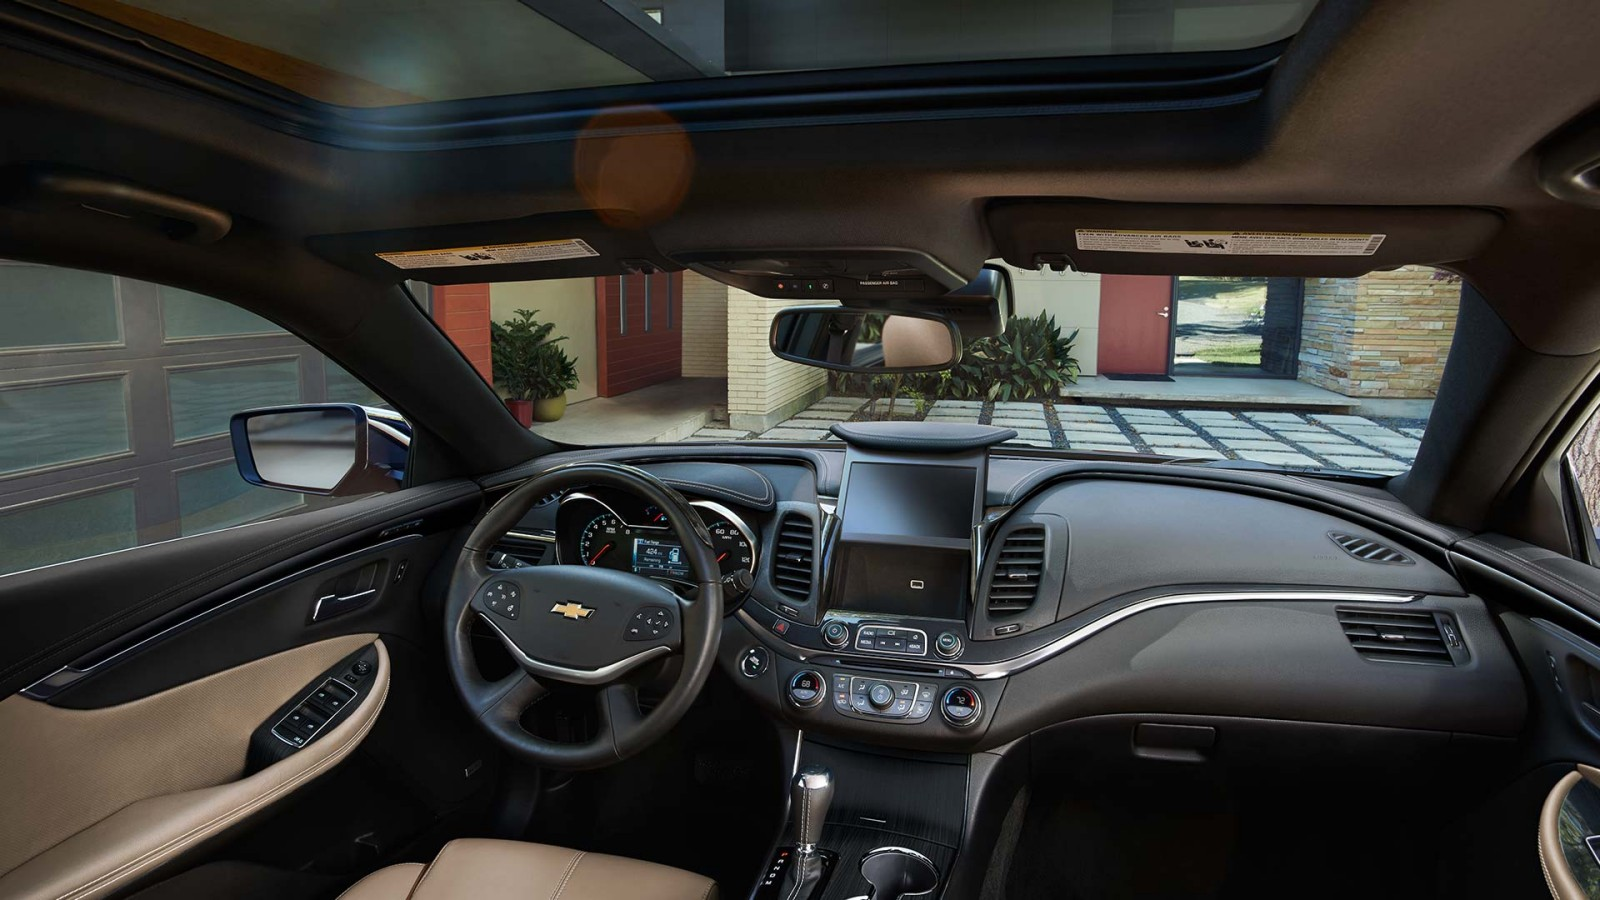 New Chevrolet Impala Interior main image